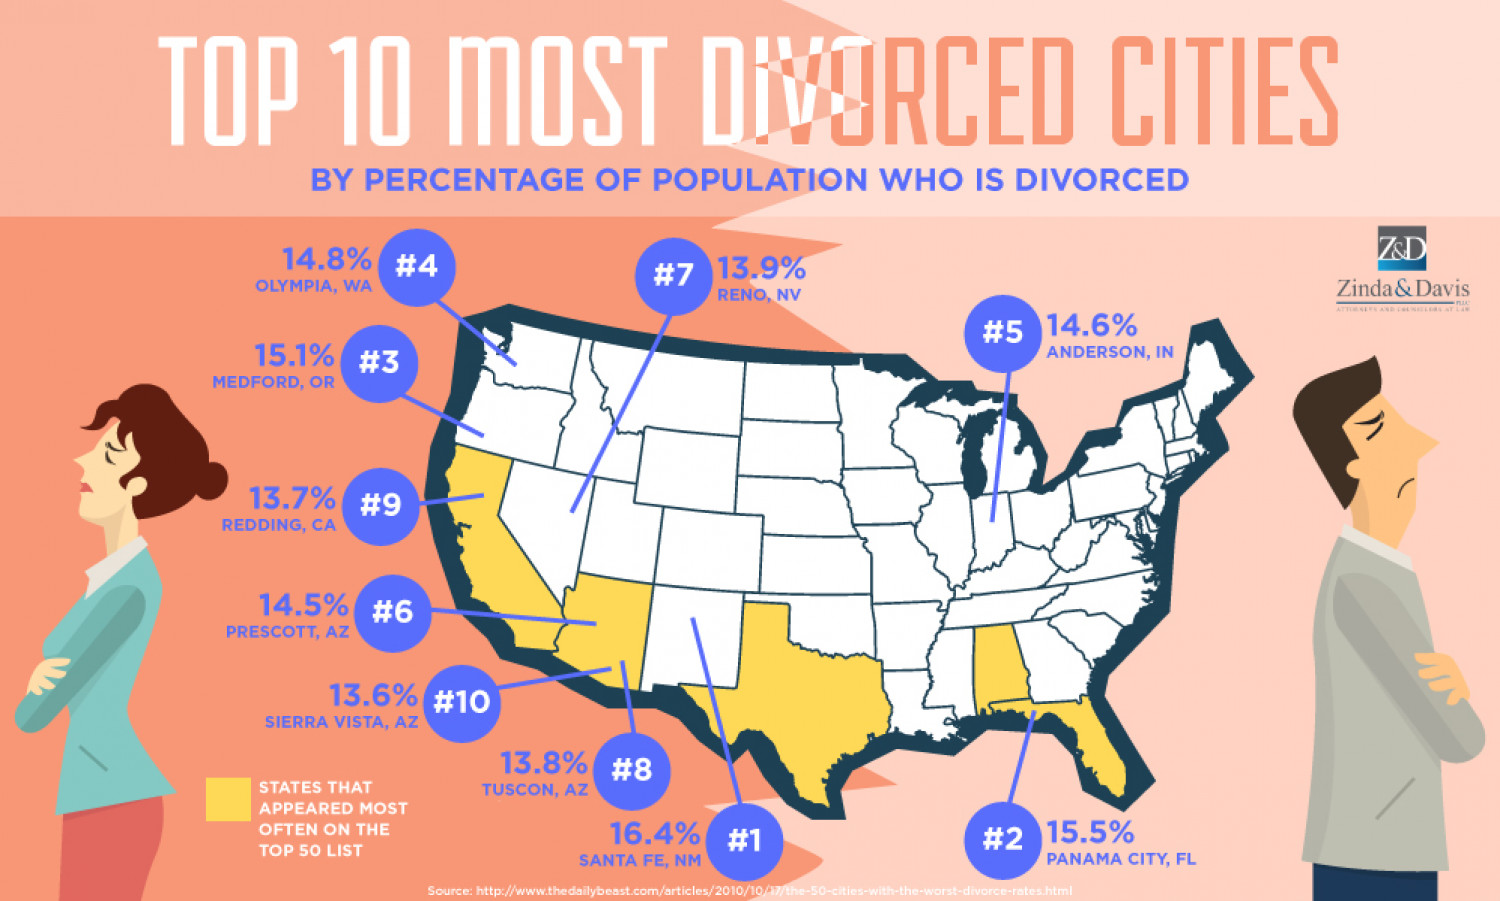 Top 10 Most Divorced Cities Infographic